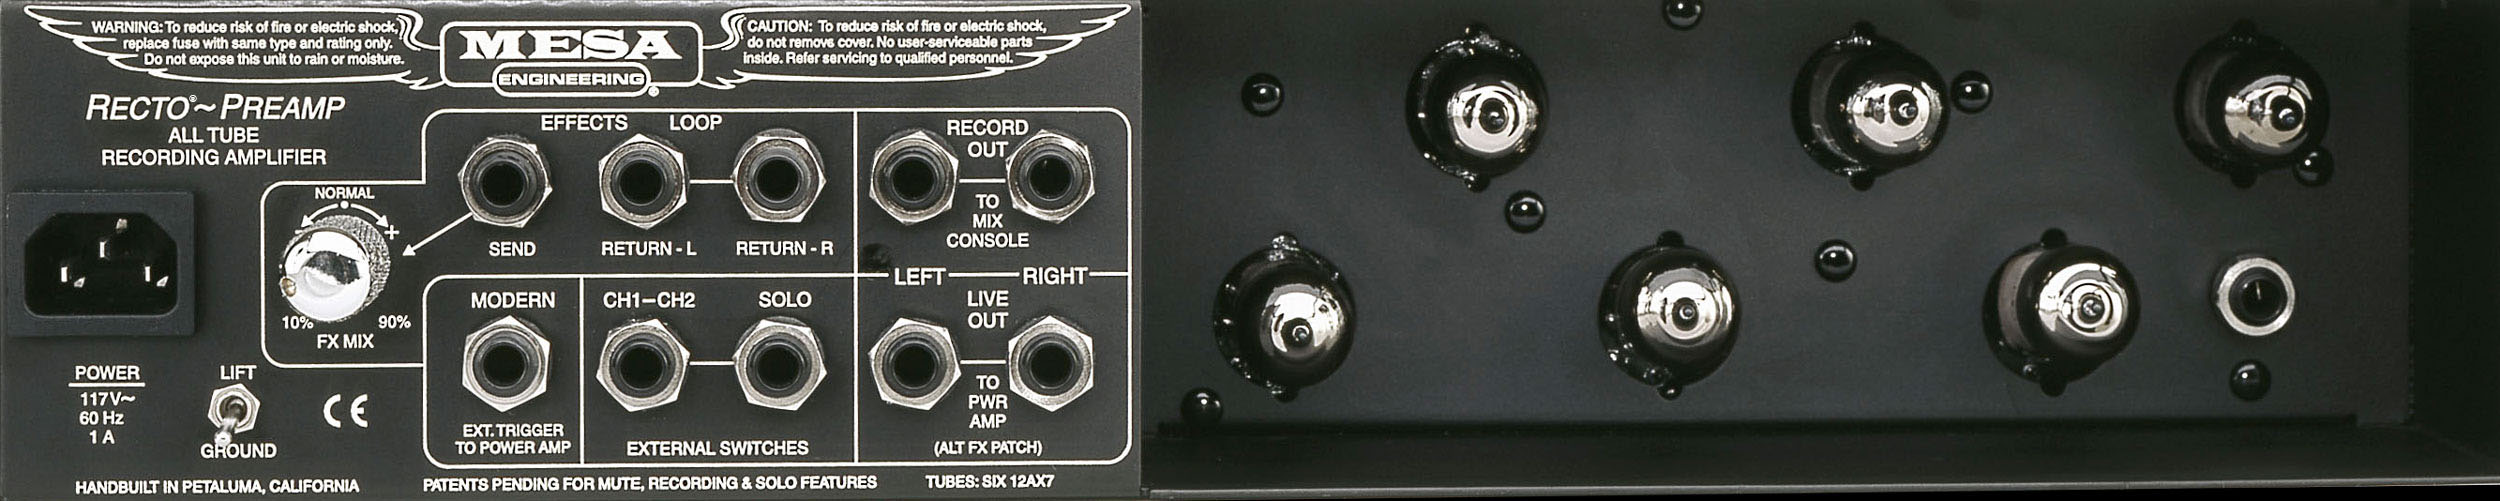 rectifier recording preamp fd2 rear panel - Mesa Boogie Rectifier Recording Preamp Rack Mount